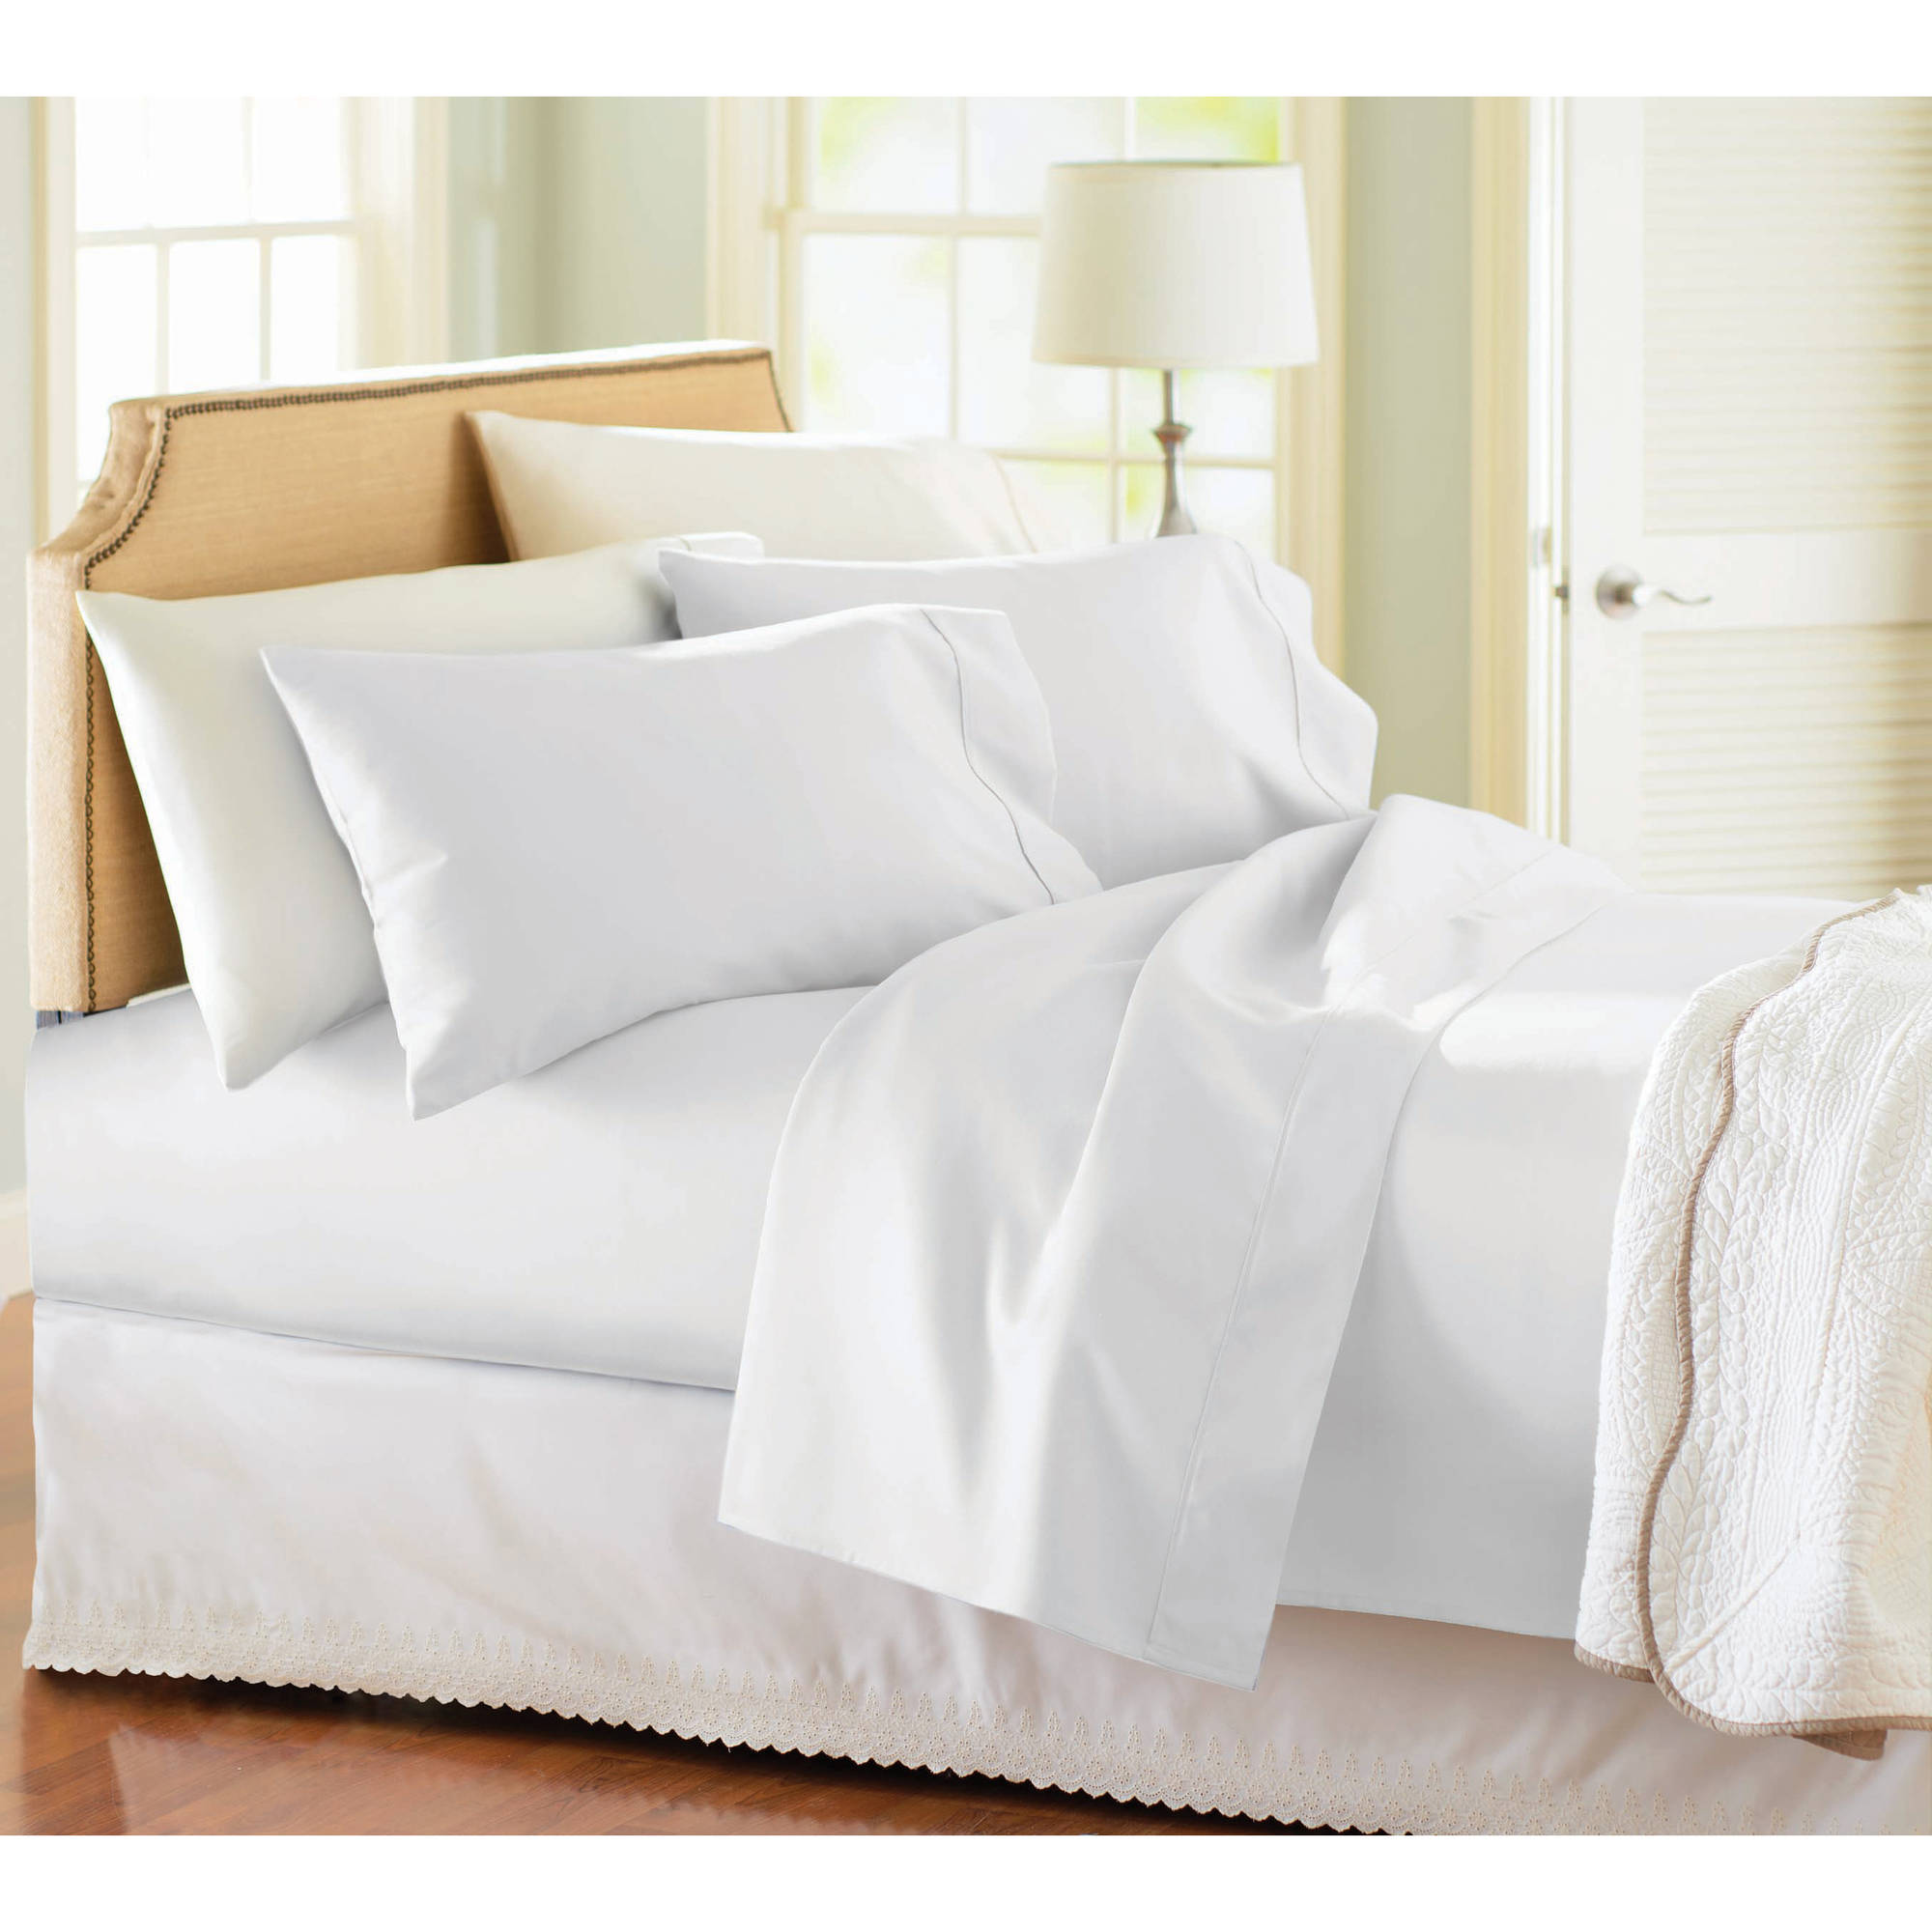 Better Homes Gardens 300 Thread Count Twin Bedding Sheet Set